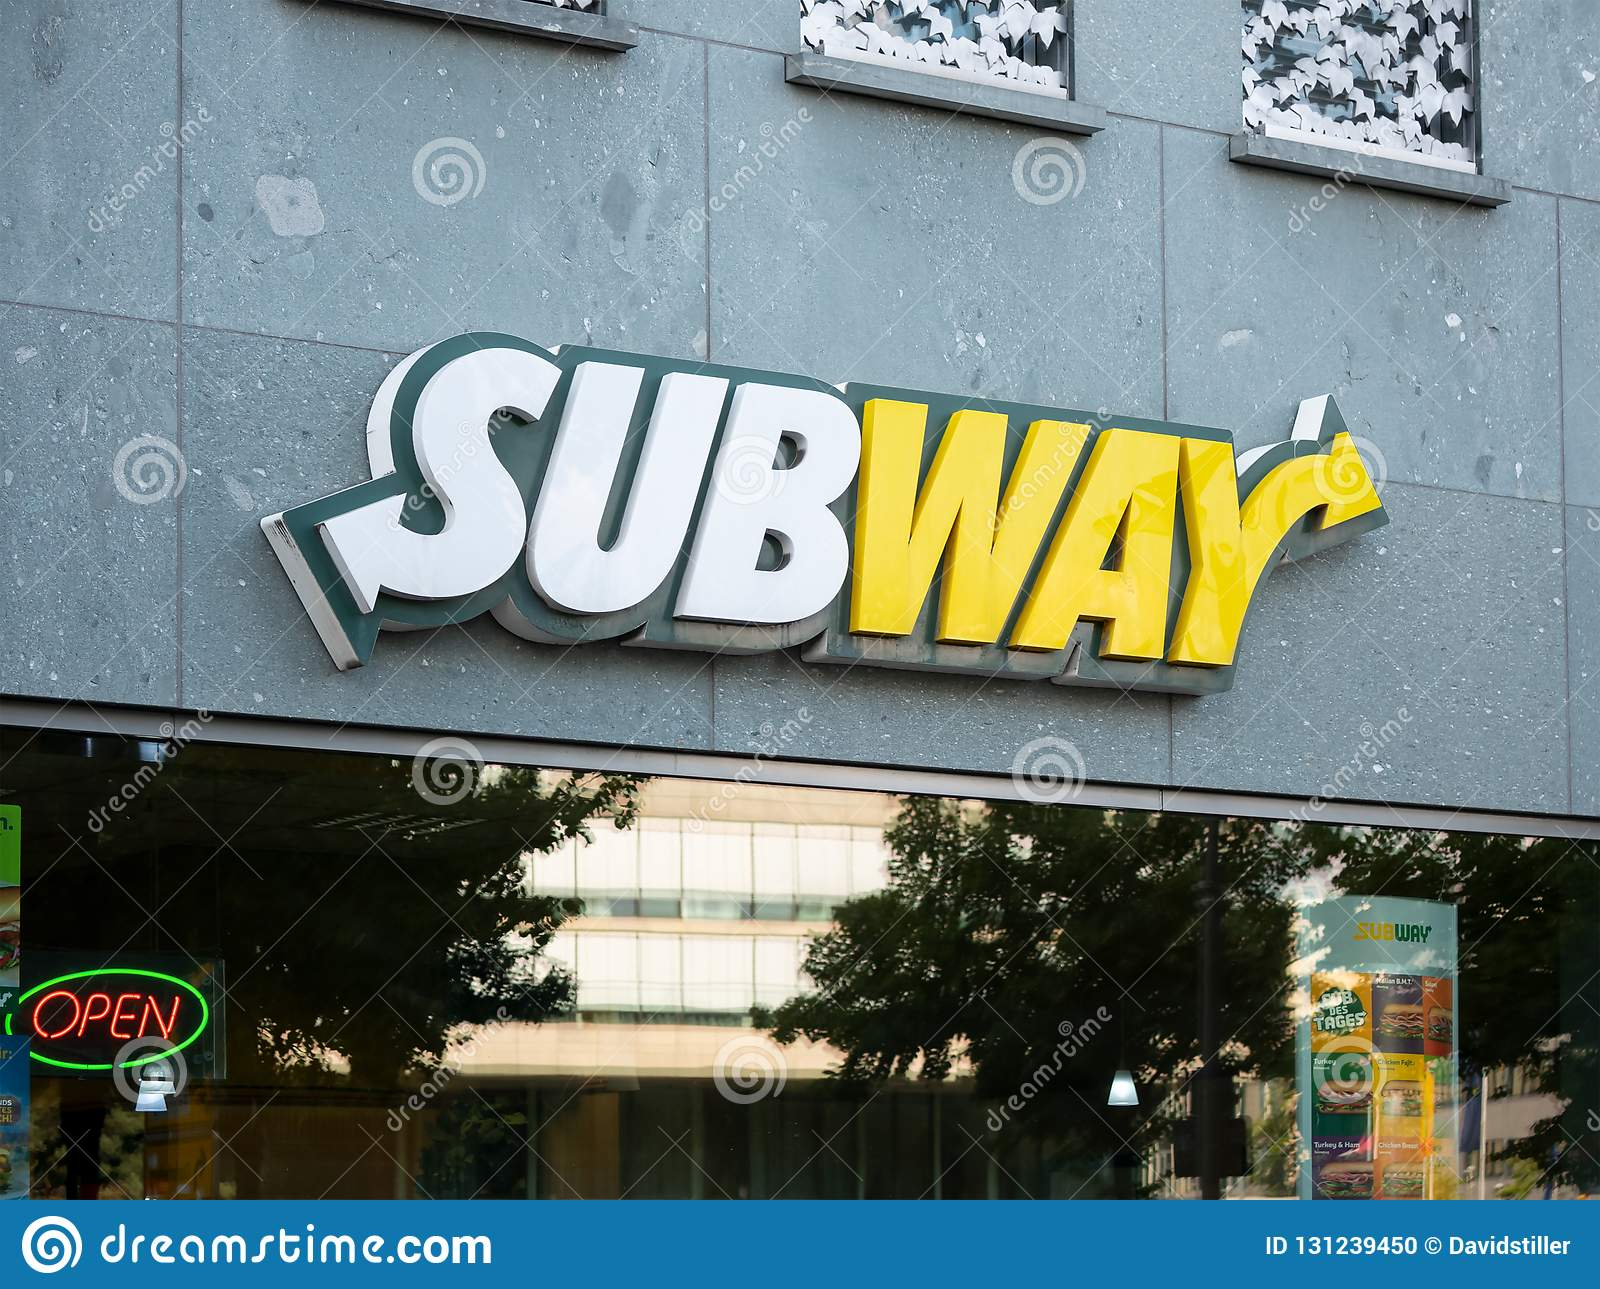 subway logo at a fast food restaurant in berlin germany